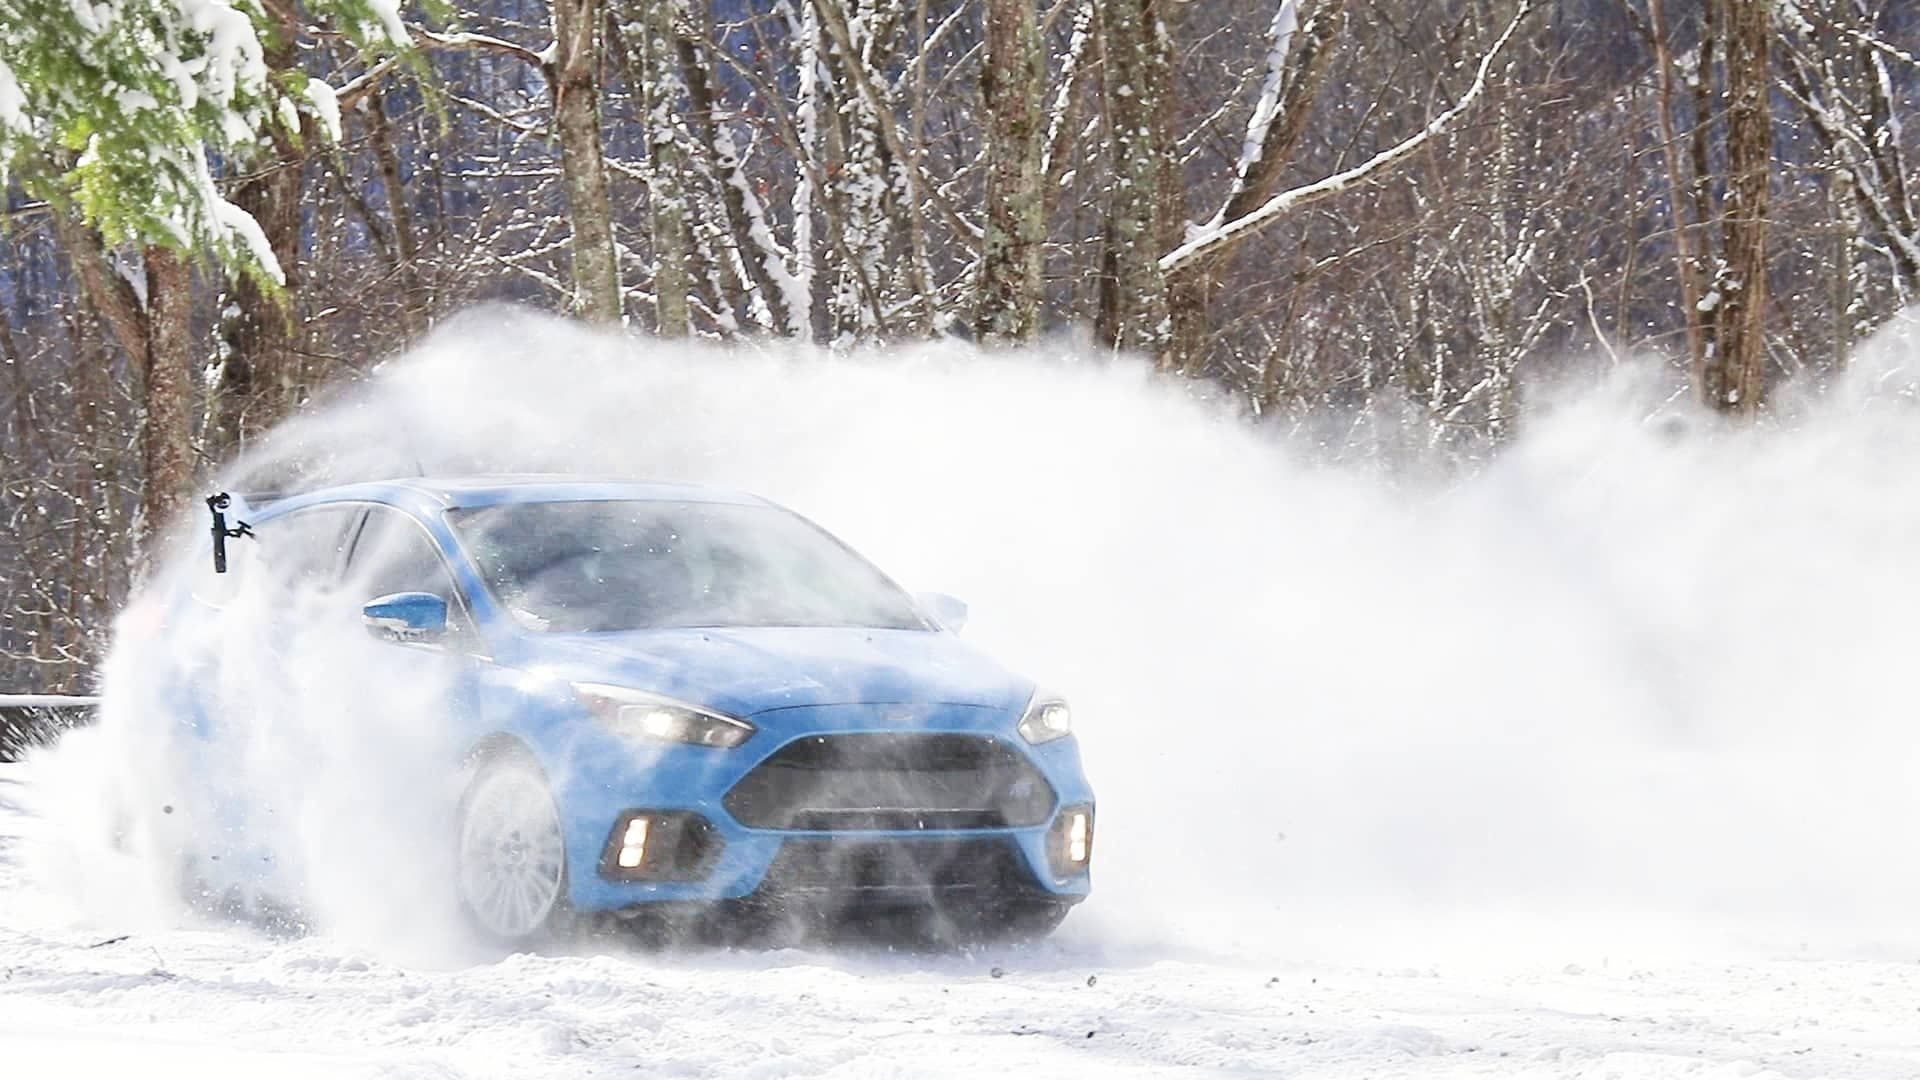 Forged Performance Focus Rs Snow Adventure On Vimeo Snow